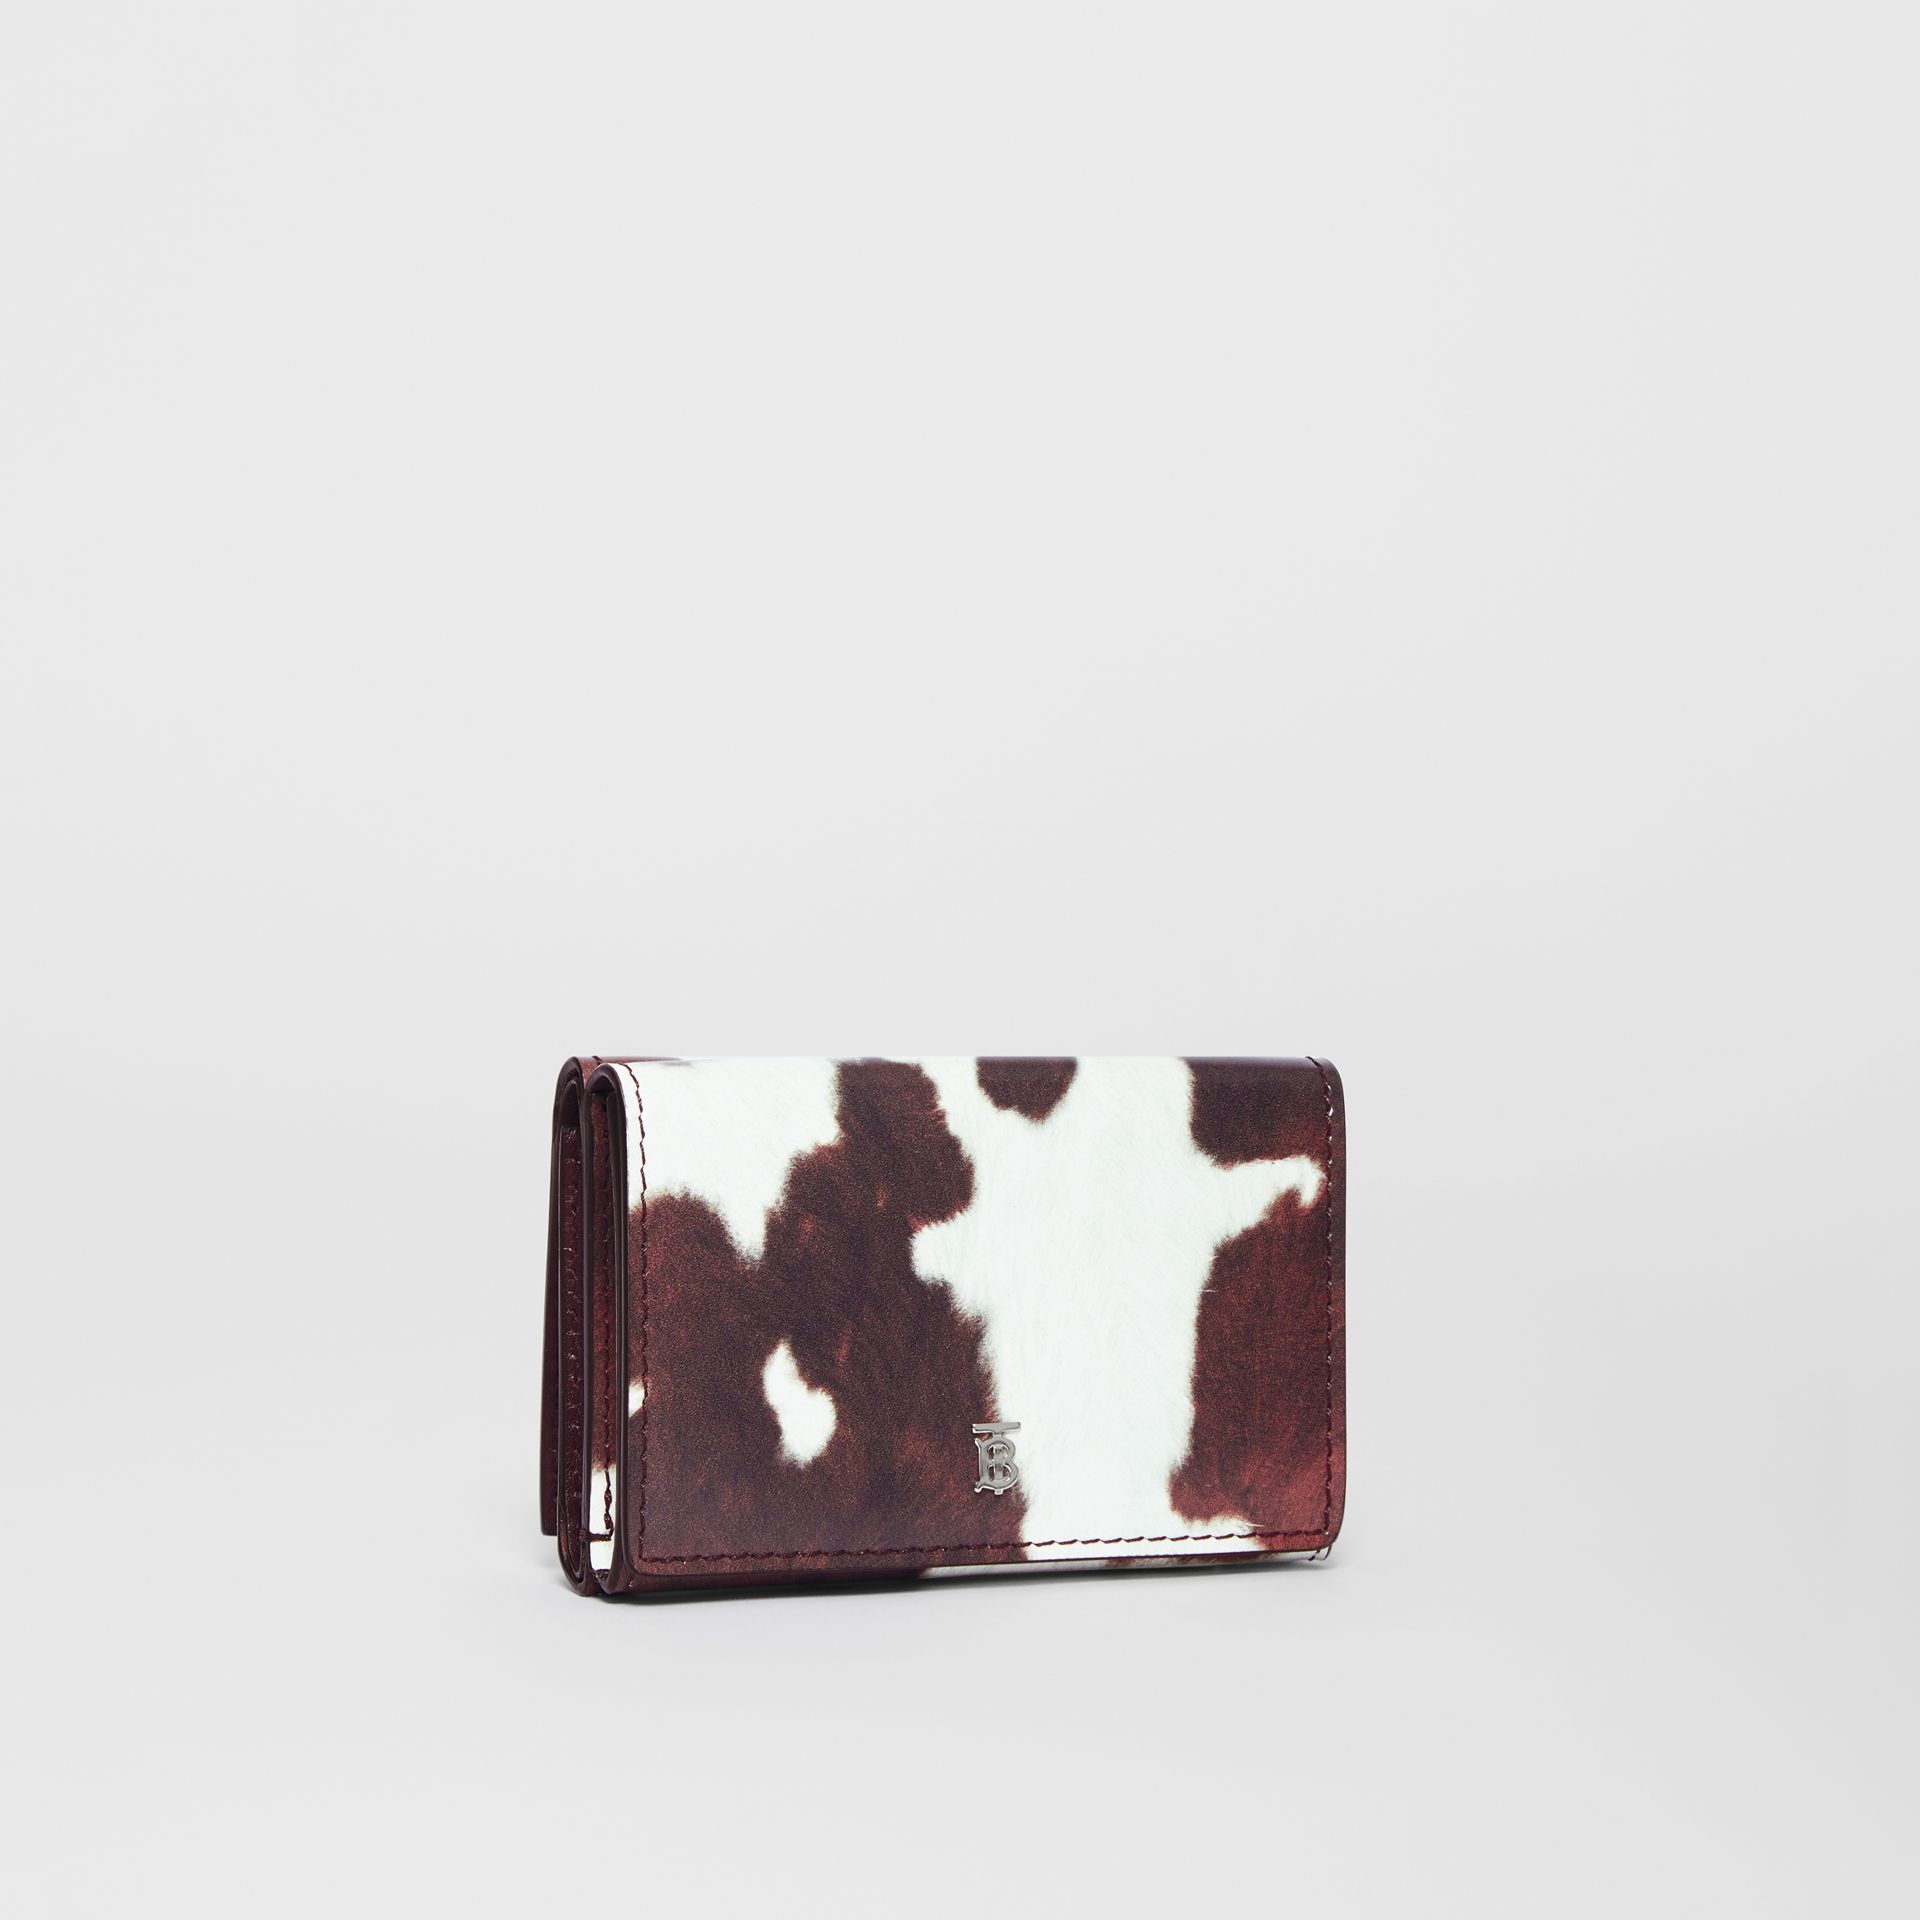 Small Cow Print Leather Folding Wallet in Malt Brown - Women | Burberry - gallery image 3